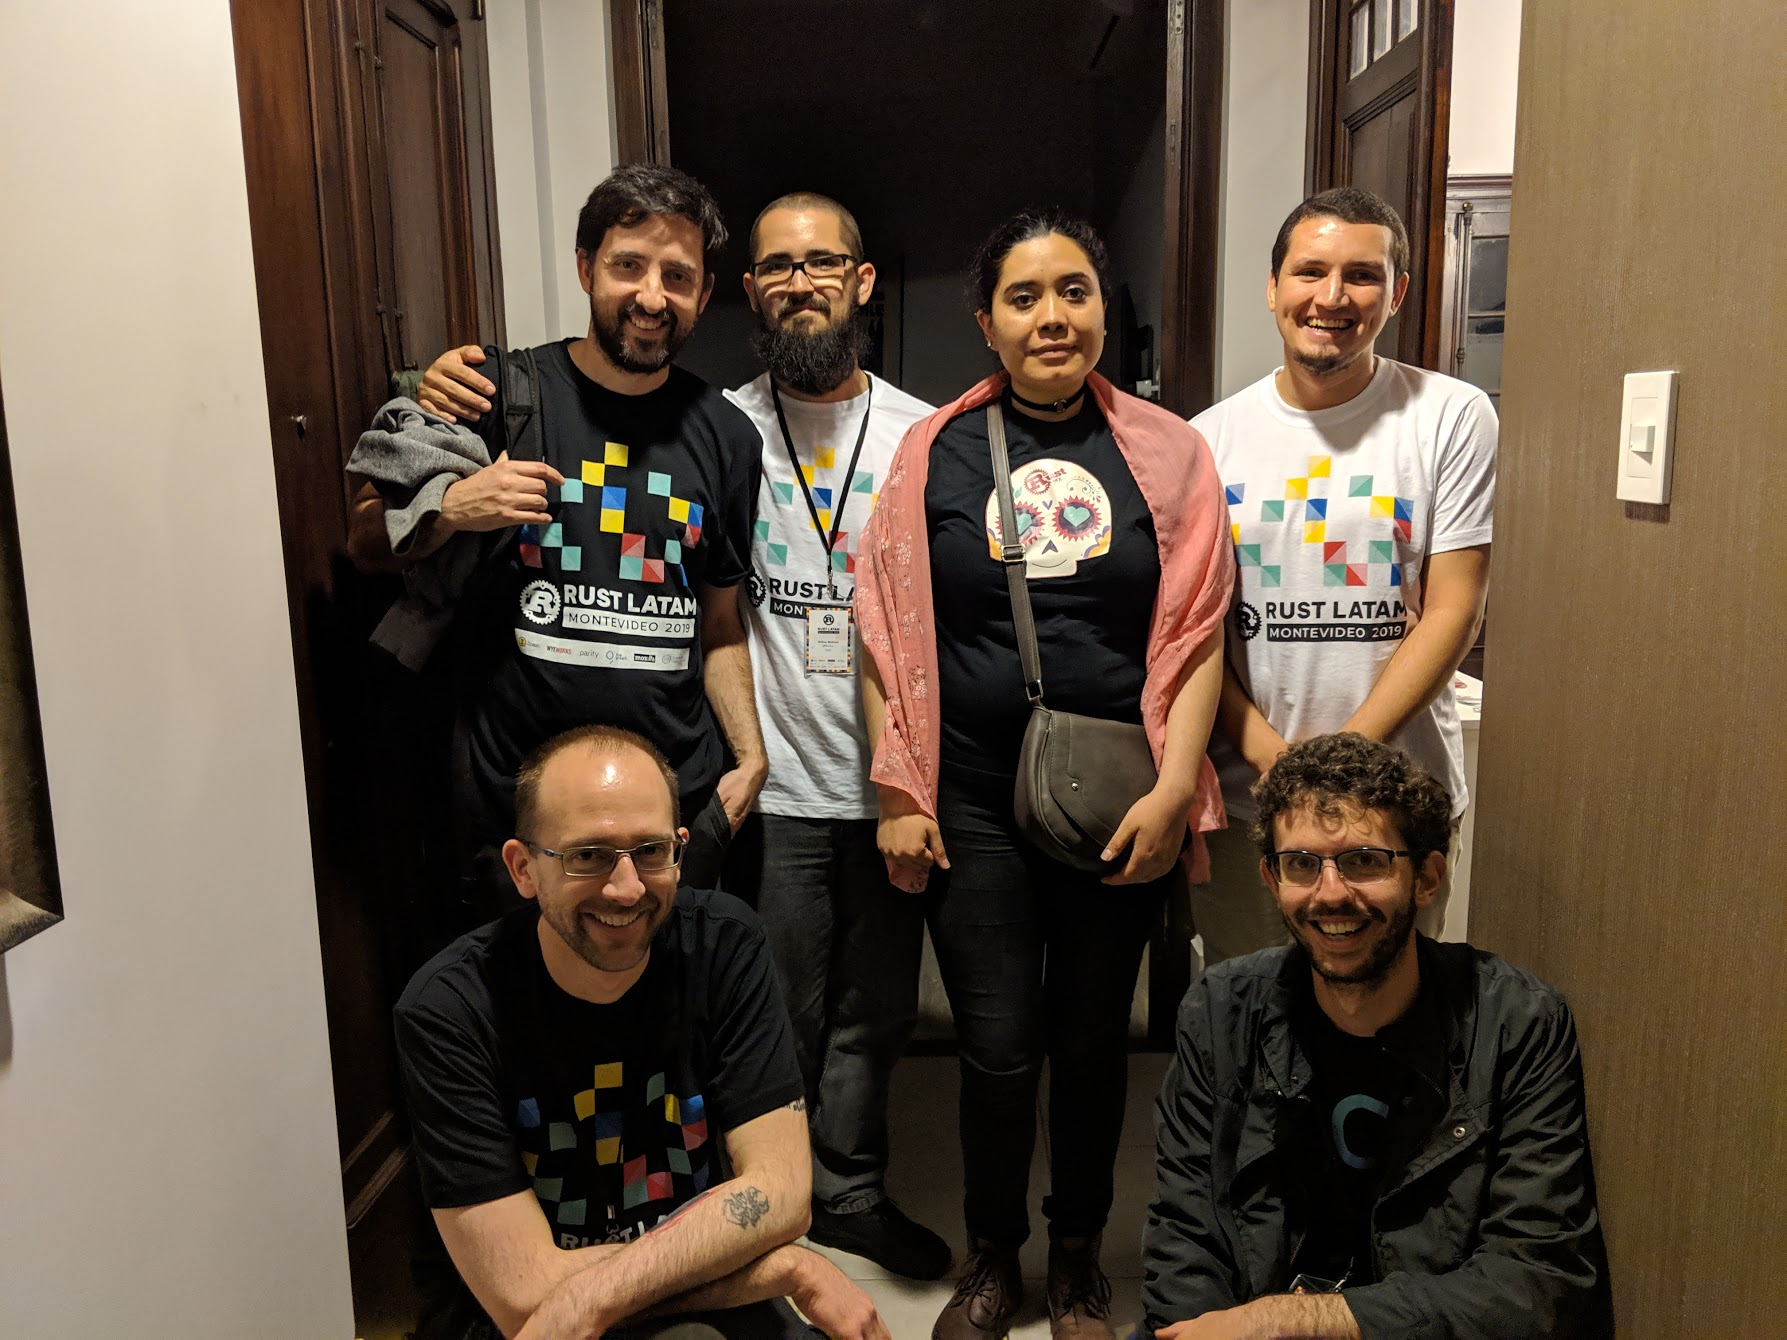 All organizers in the corridor of our rented AirBnb place